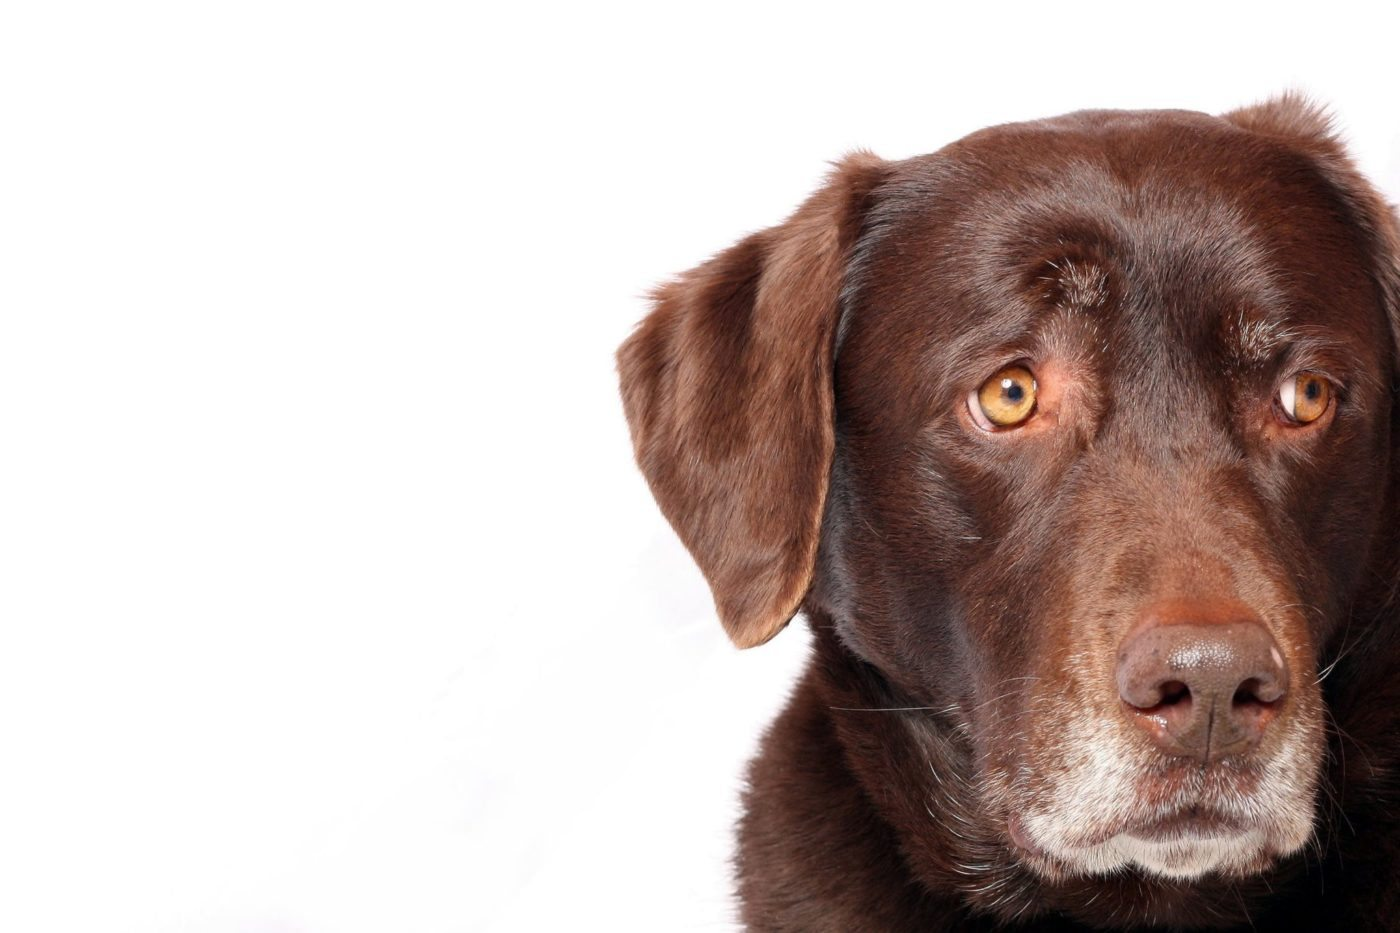 Why has the dog not barked? Quieter, wiser heads are worried about our economy